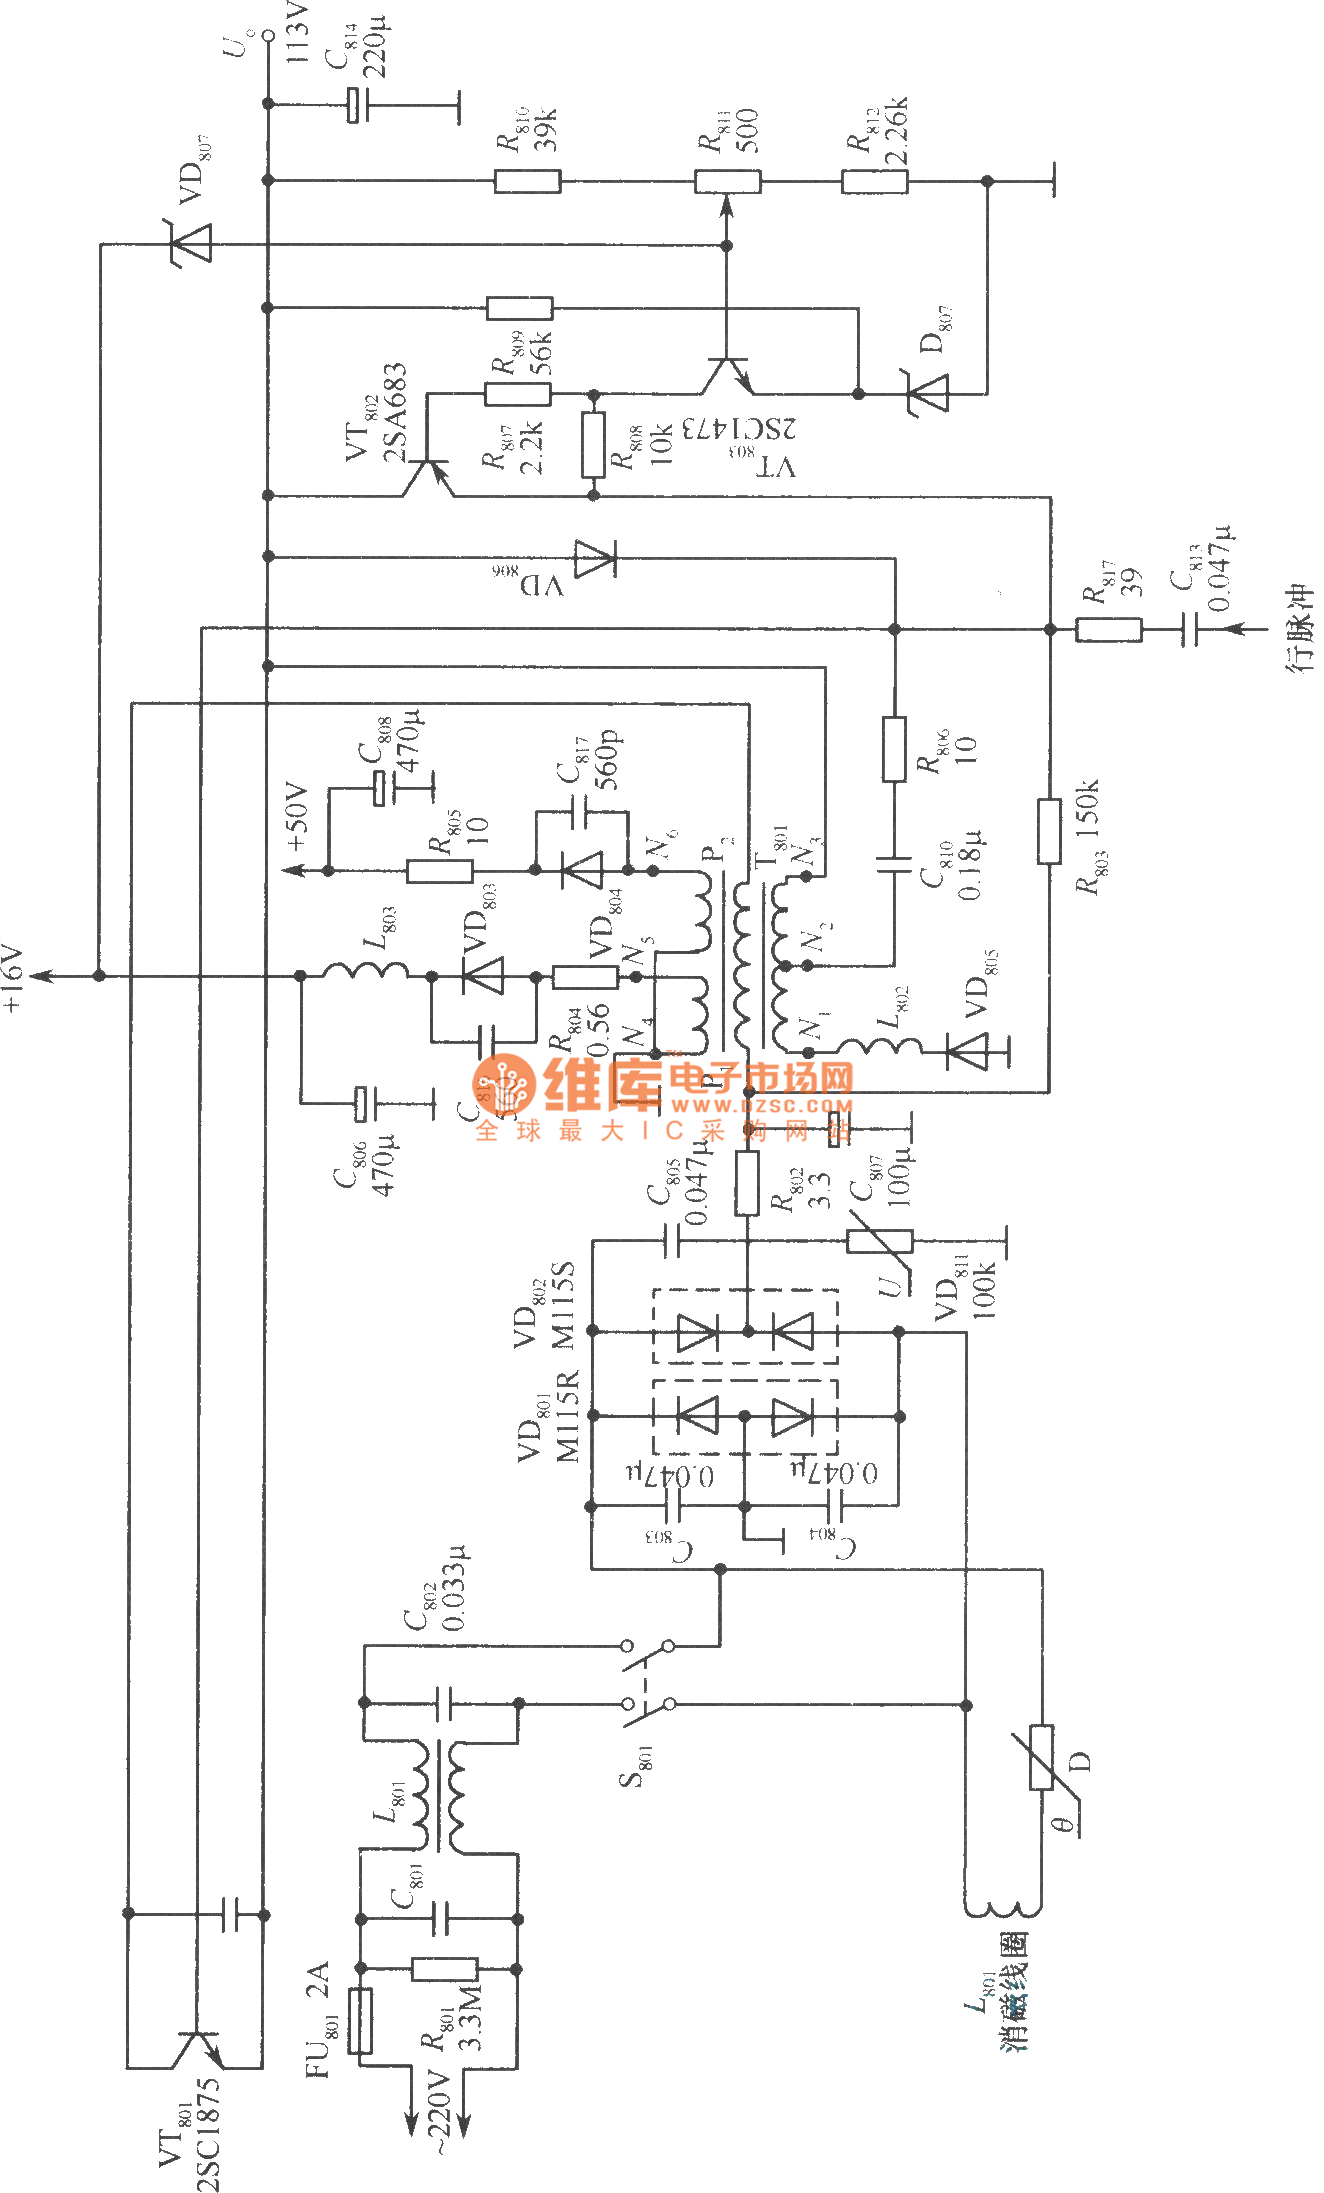 Nonisolated Switching Power Supply Circuit Diagram Isolated Buck Led Driver Eeweb Integrations Tech Community The Practical Of Non Diagrams Basics